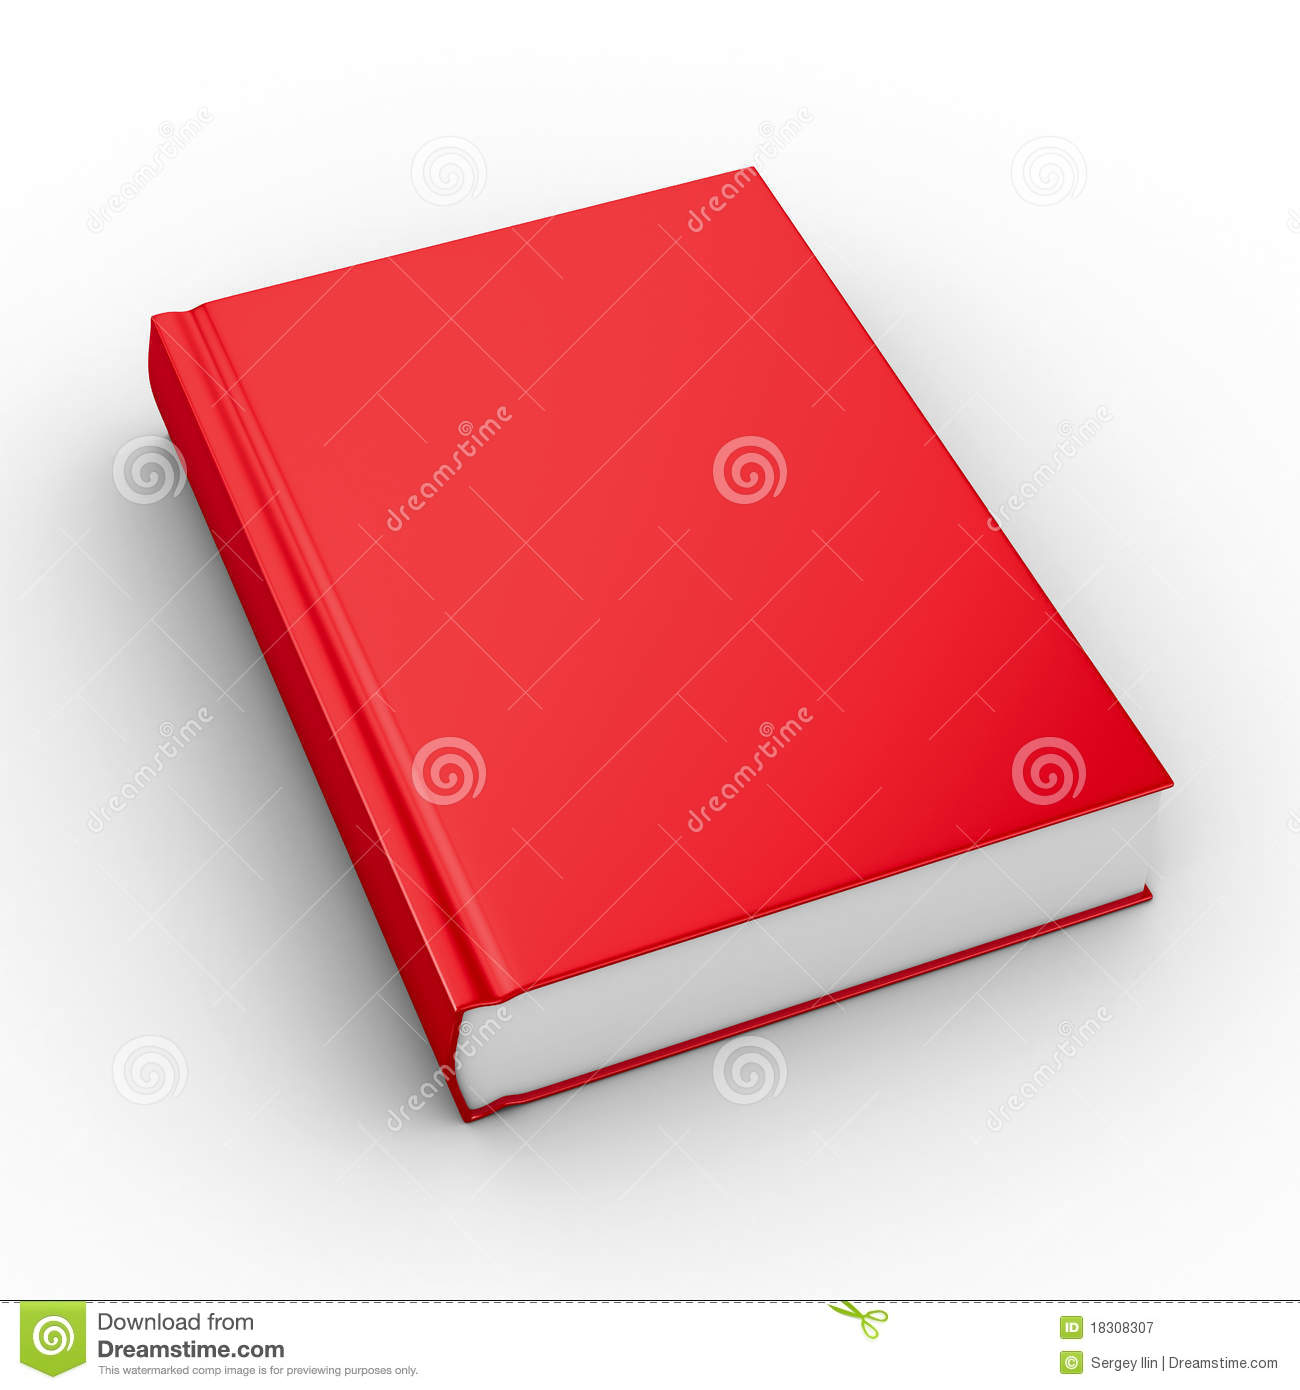 Closed book on white background